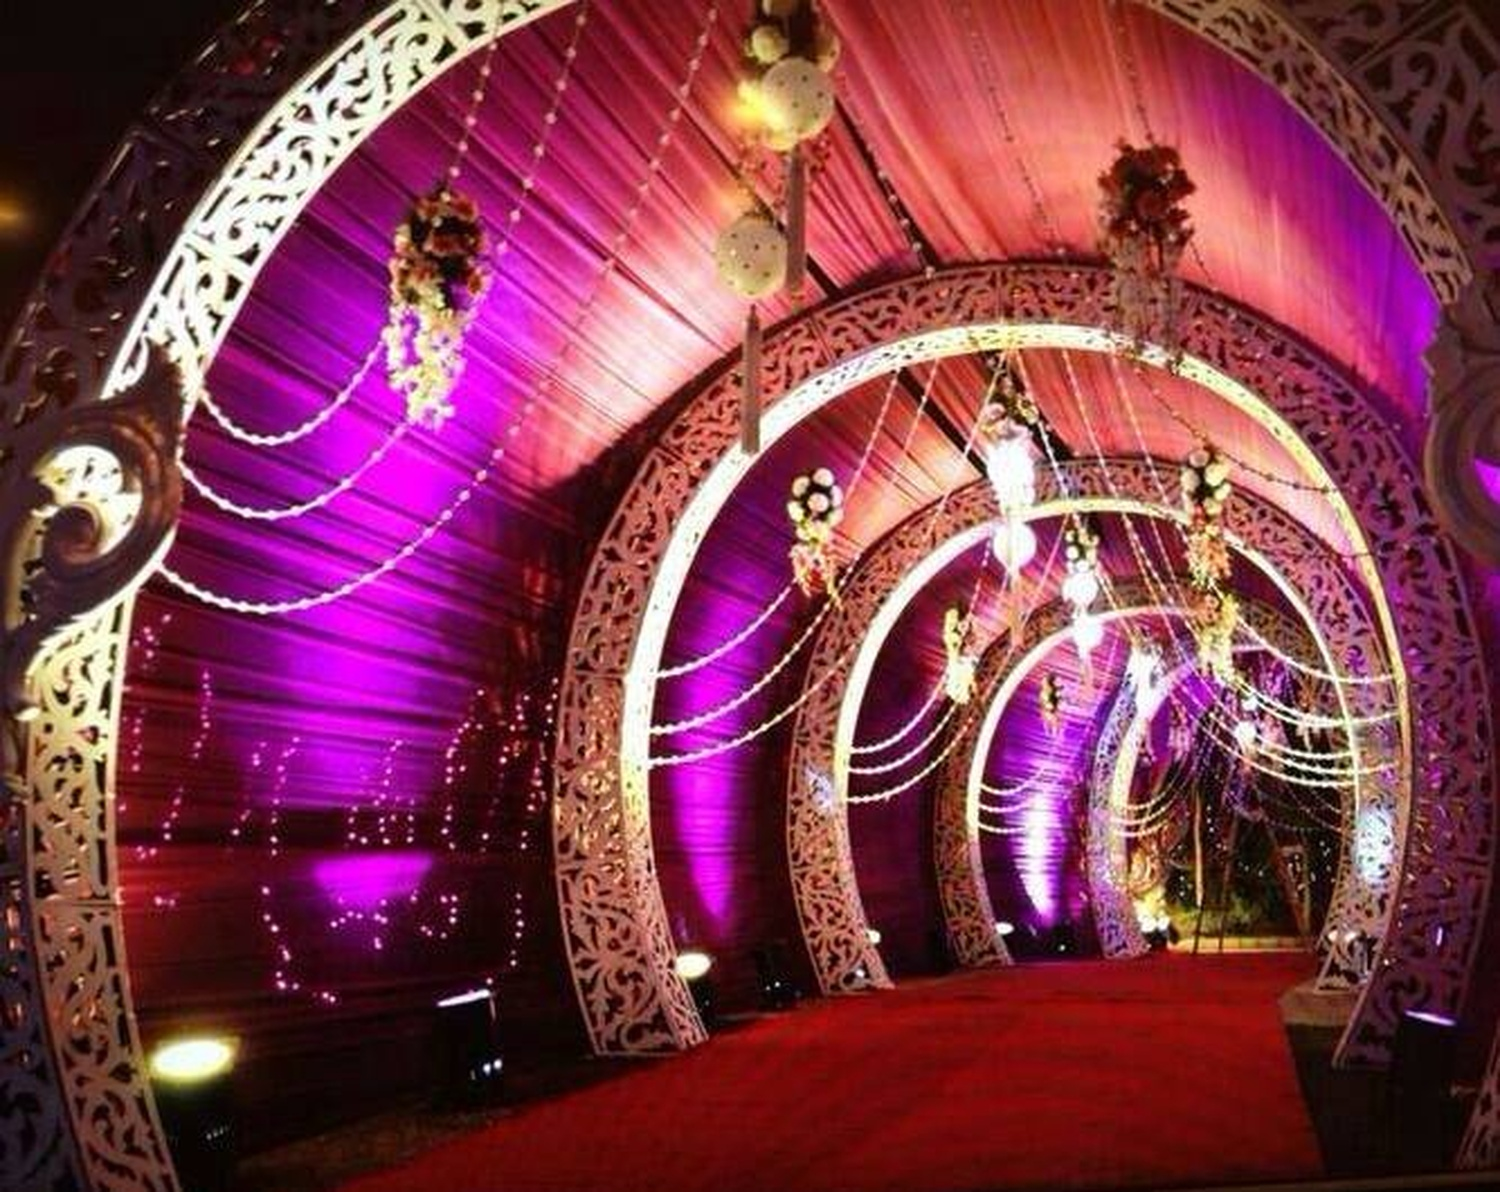 The decor wedding n exhibition wedding decorator in delhi weddingz overview junglespirit Choice Image